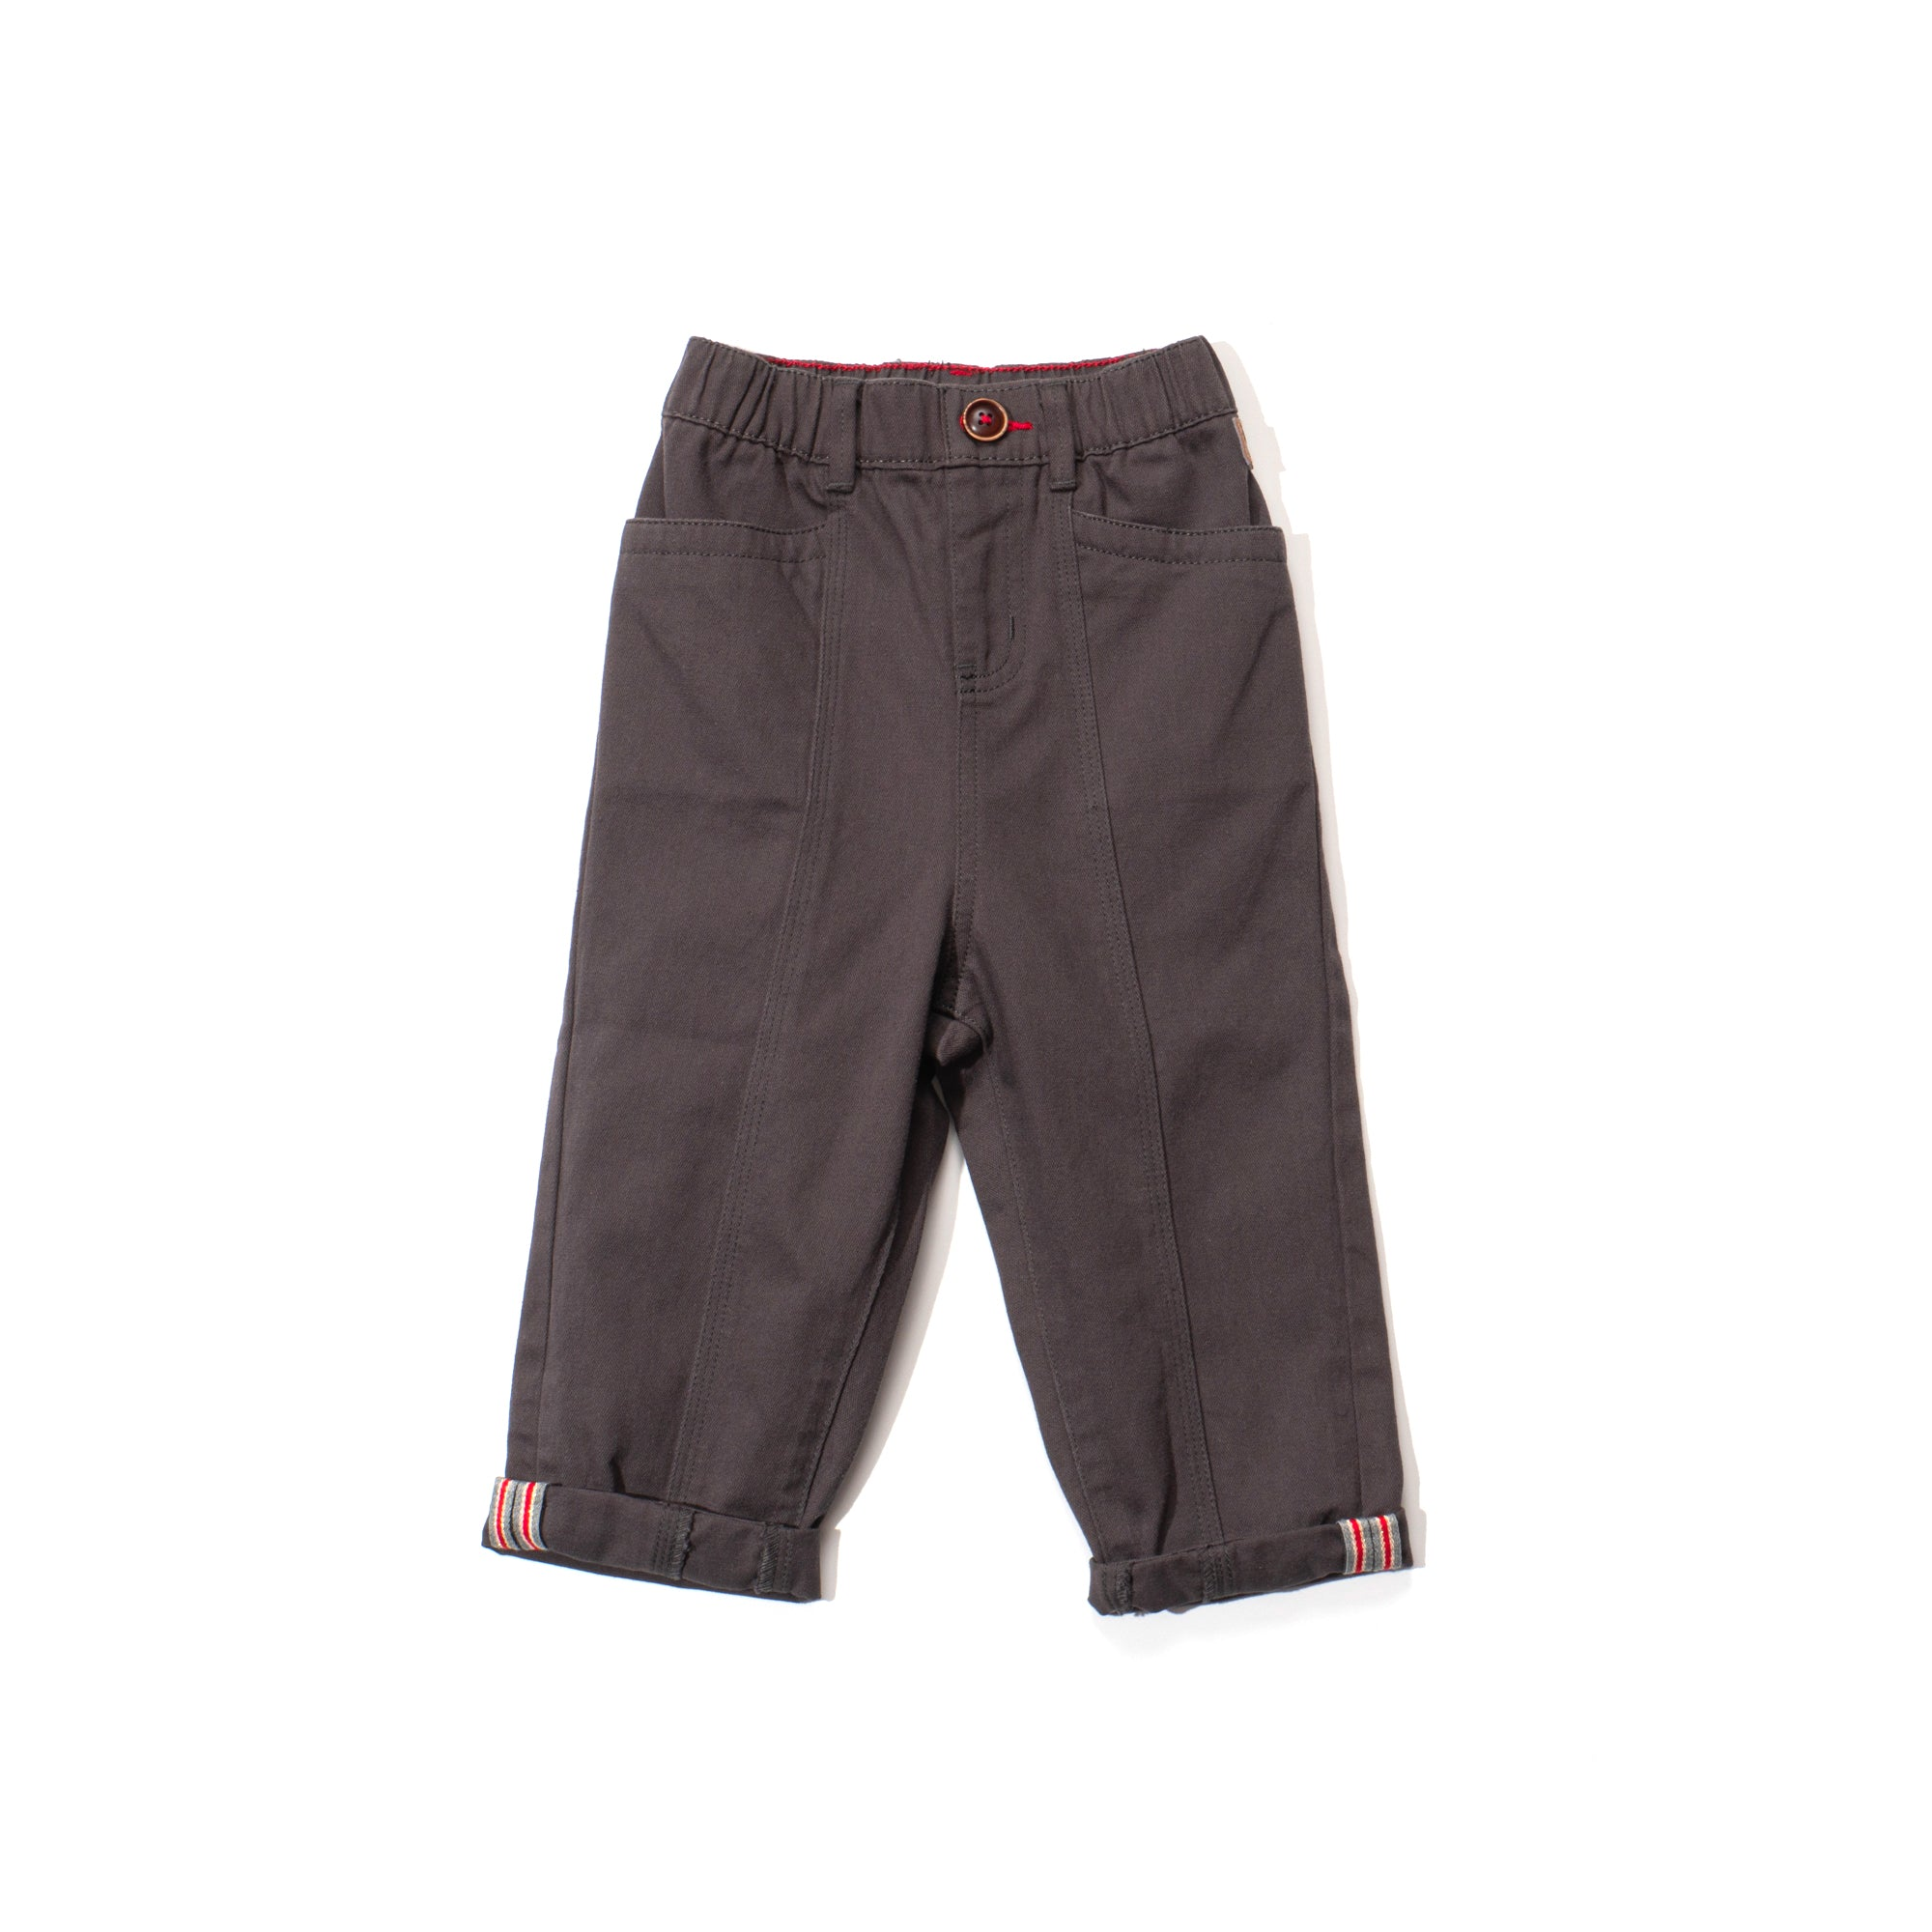 Poney Boys Long Pants 1920